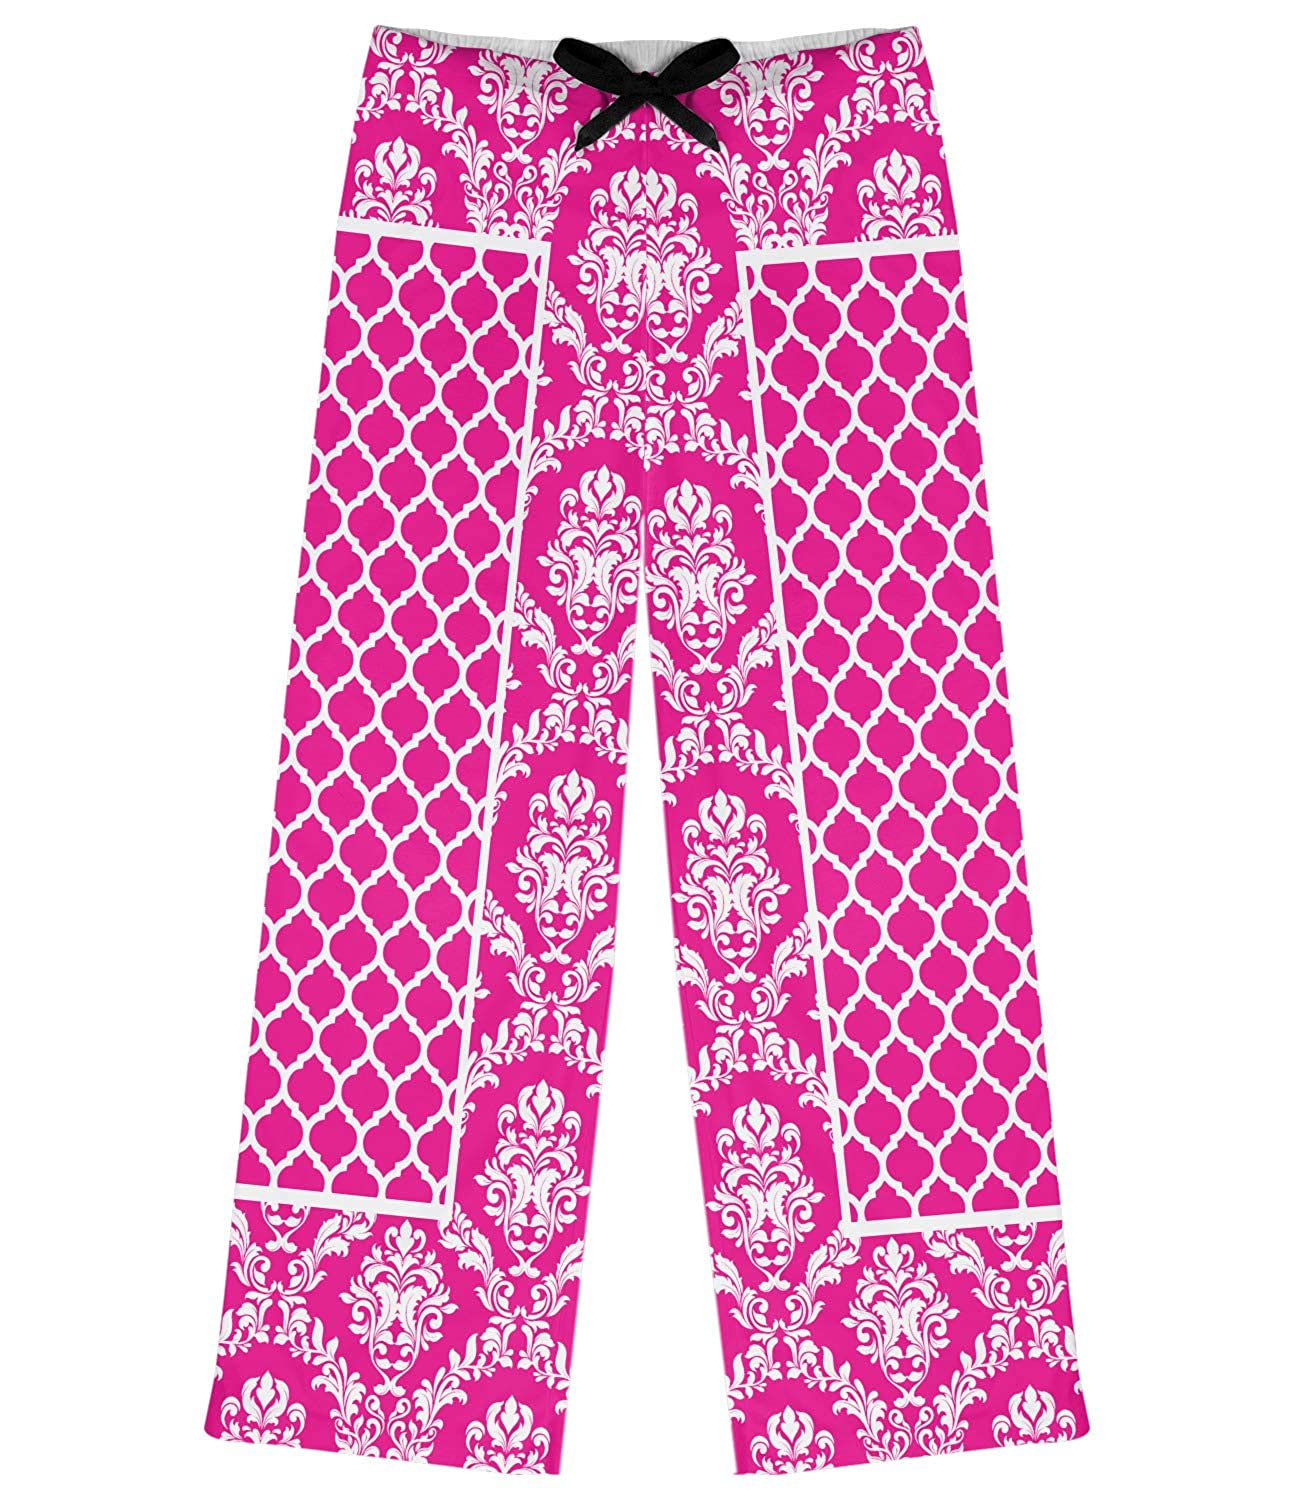 L RNK Shops Moroccan /& Damask Womens Pajama Pants Personalized Pink